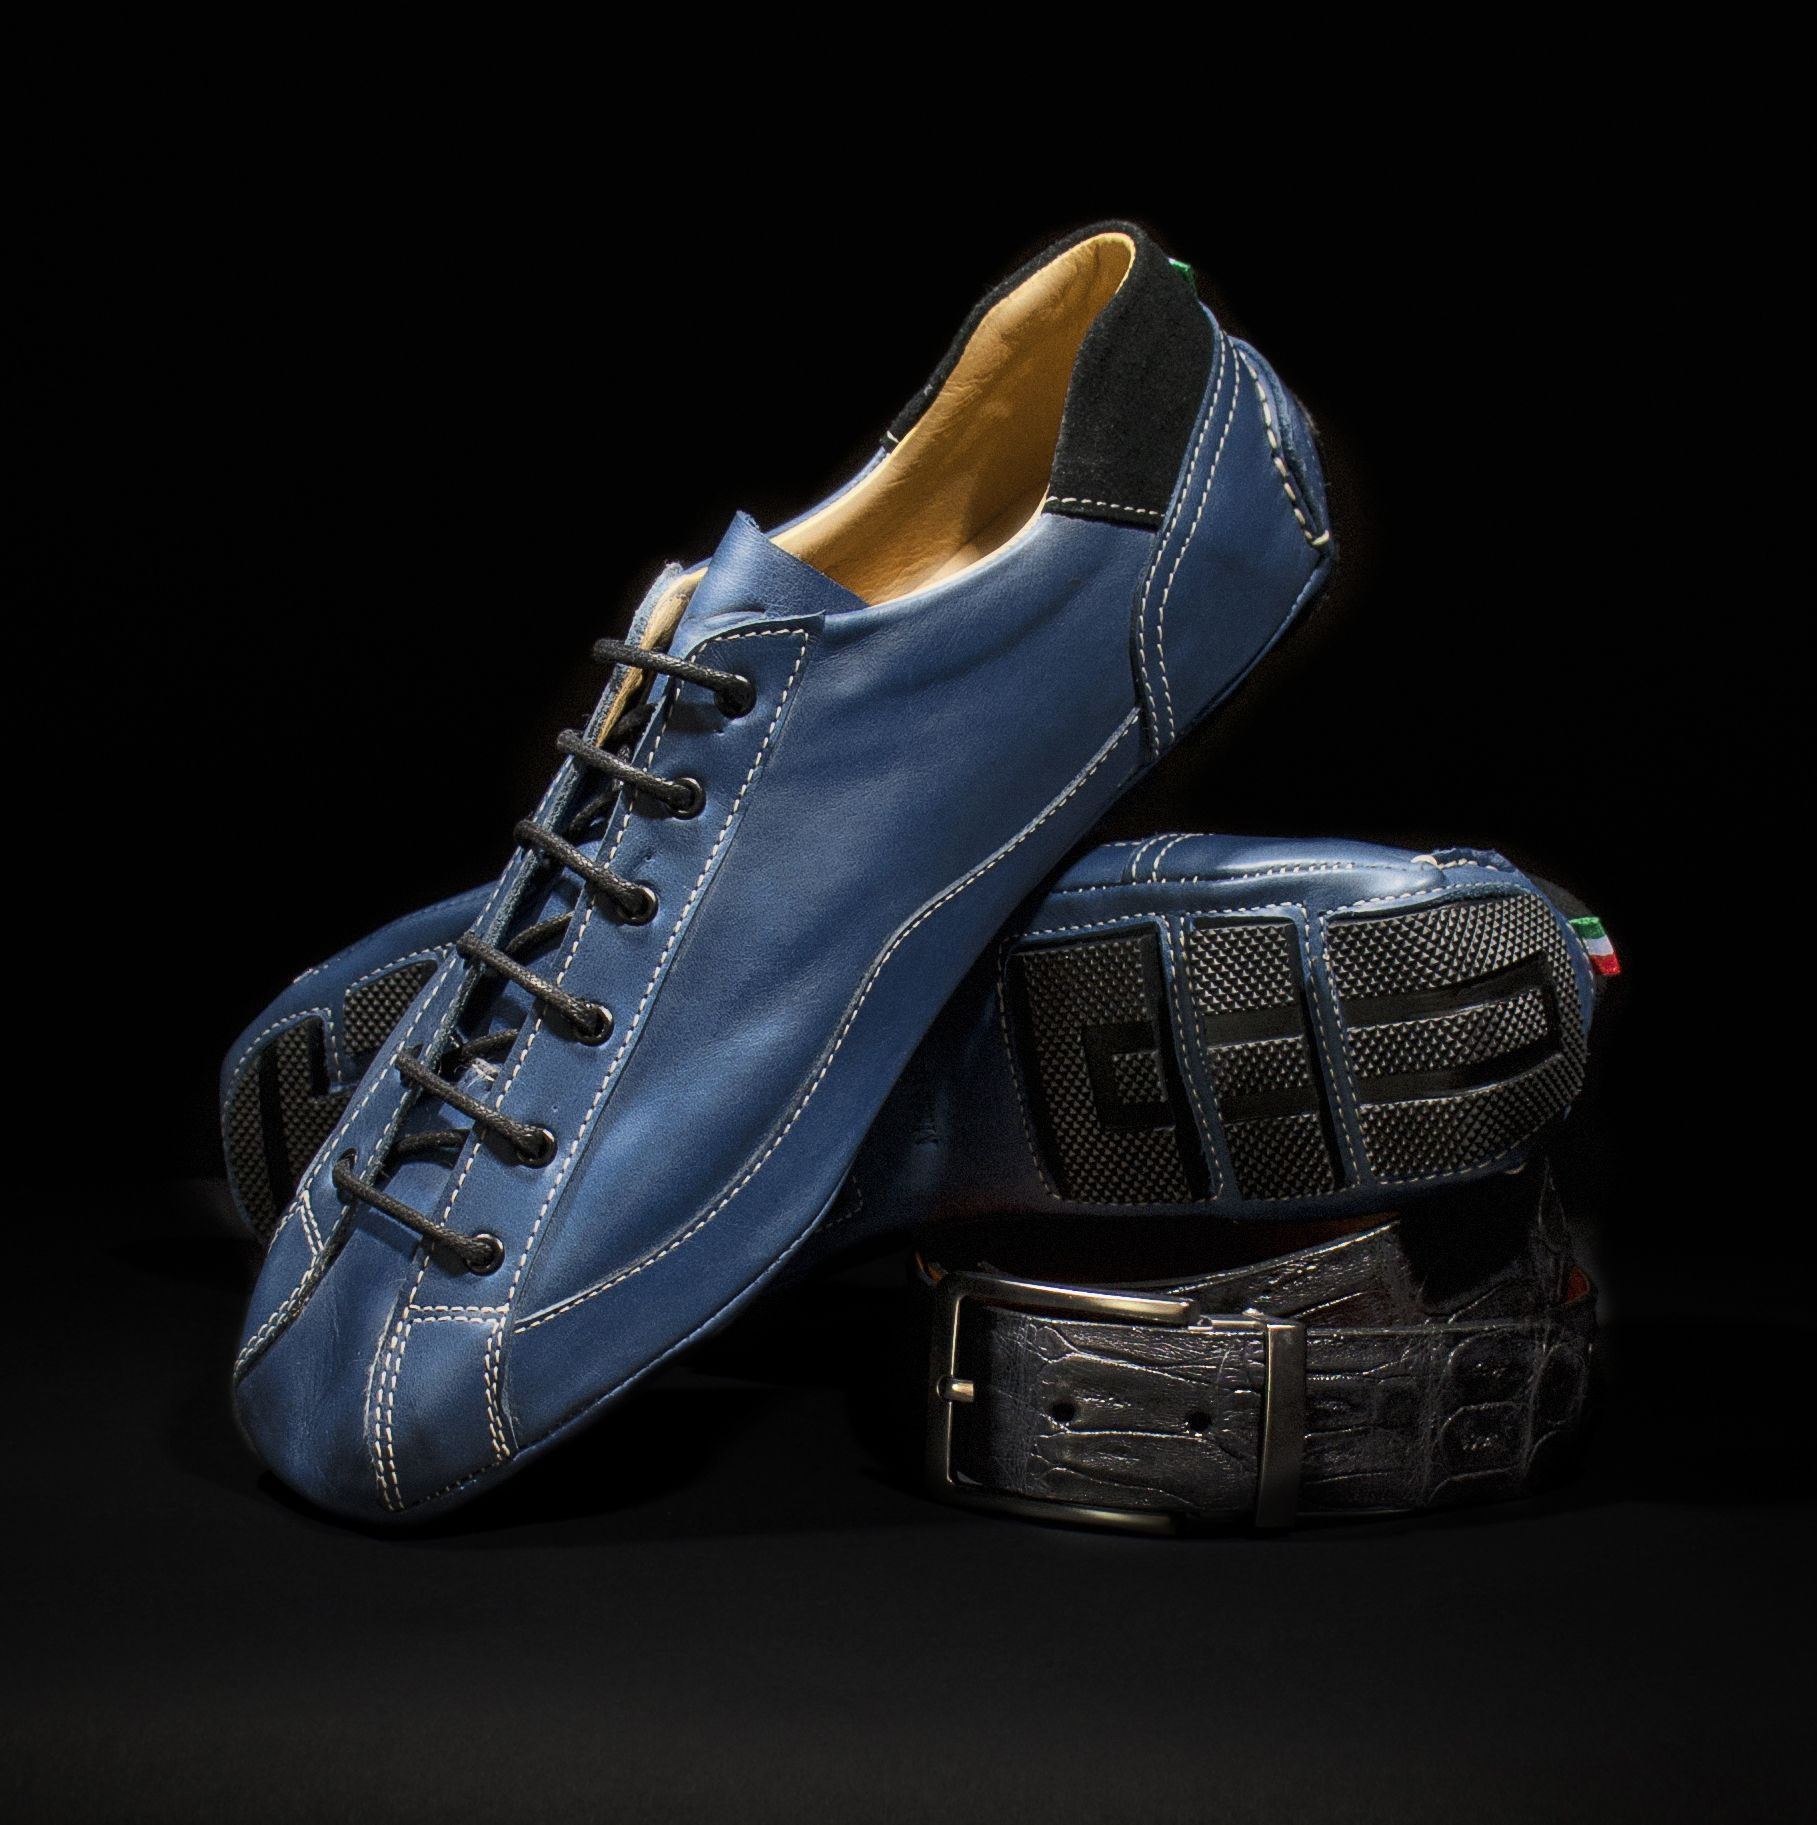 Exclusive Italian Shoes The Anel Racer Collection Is Entirely Hand Made In Italy With The Finest Materials For People Italian Shoes Fashion Shoes Mens Fashion